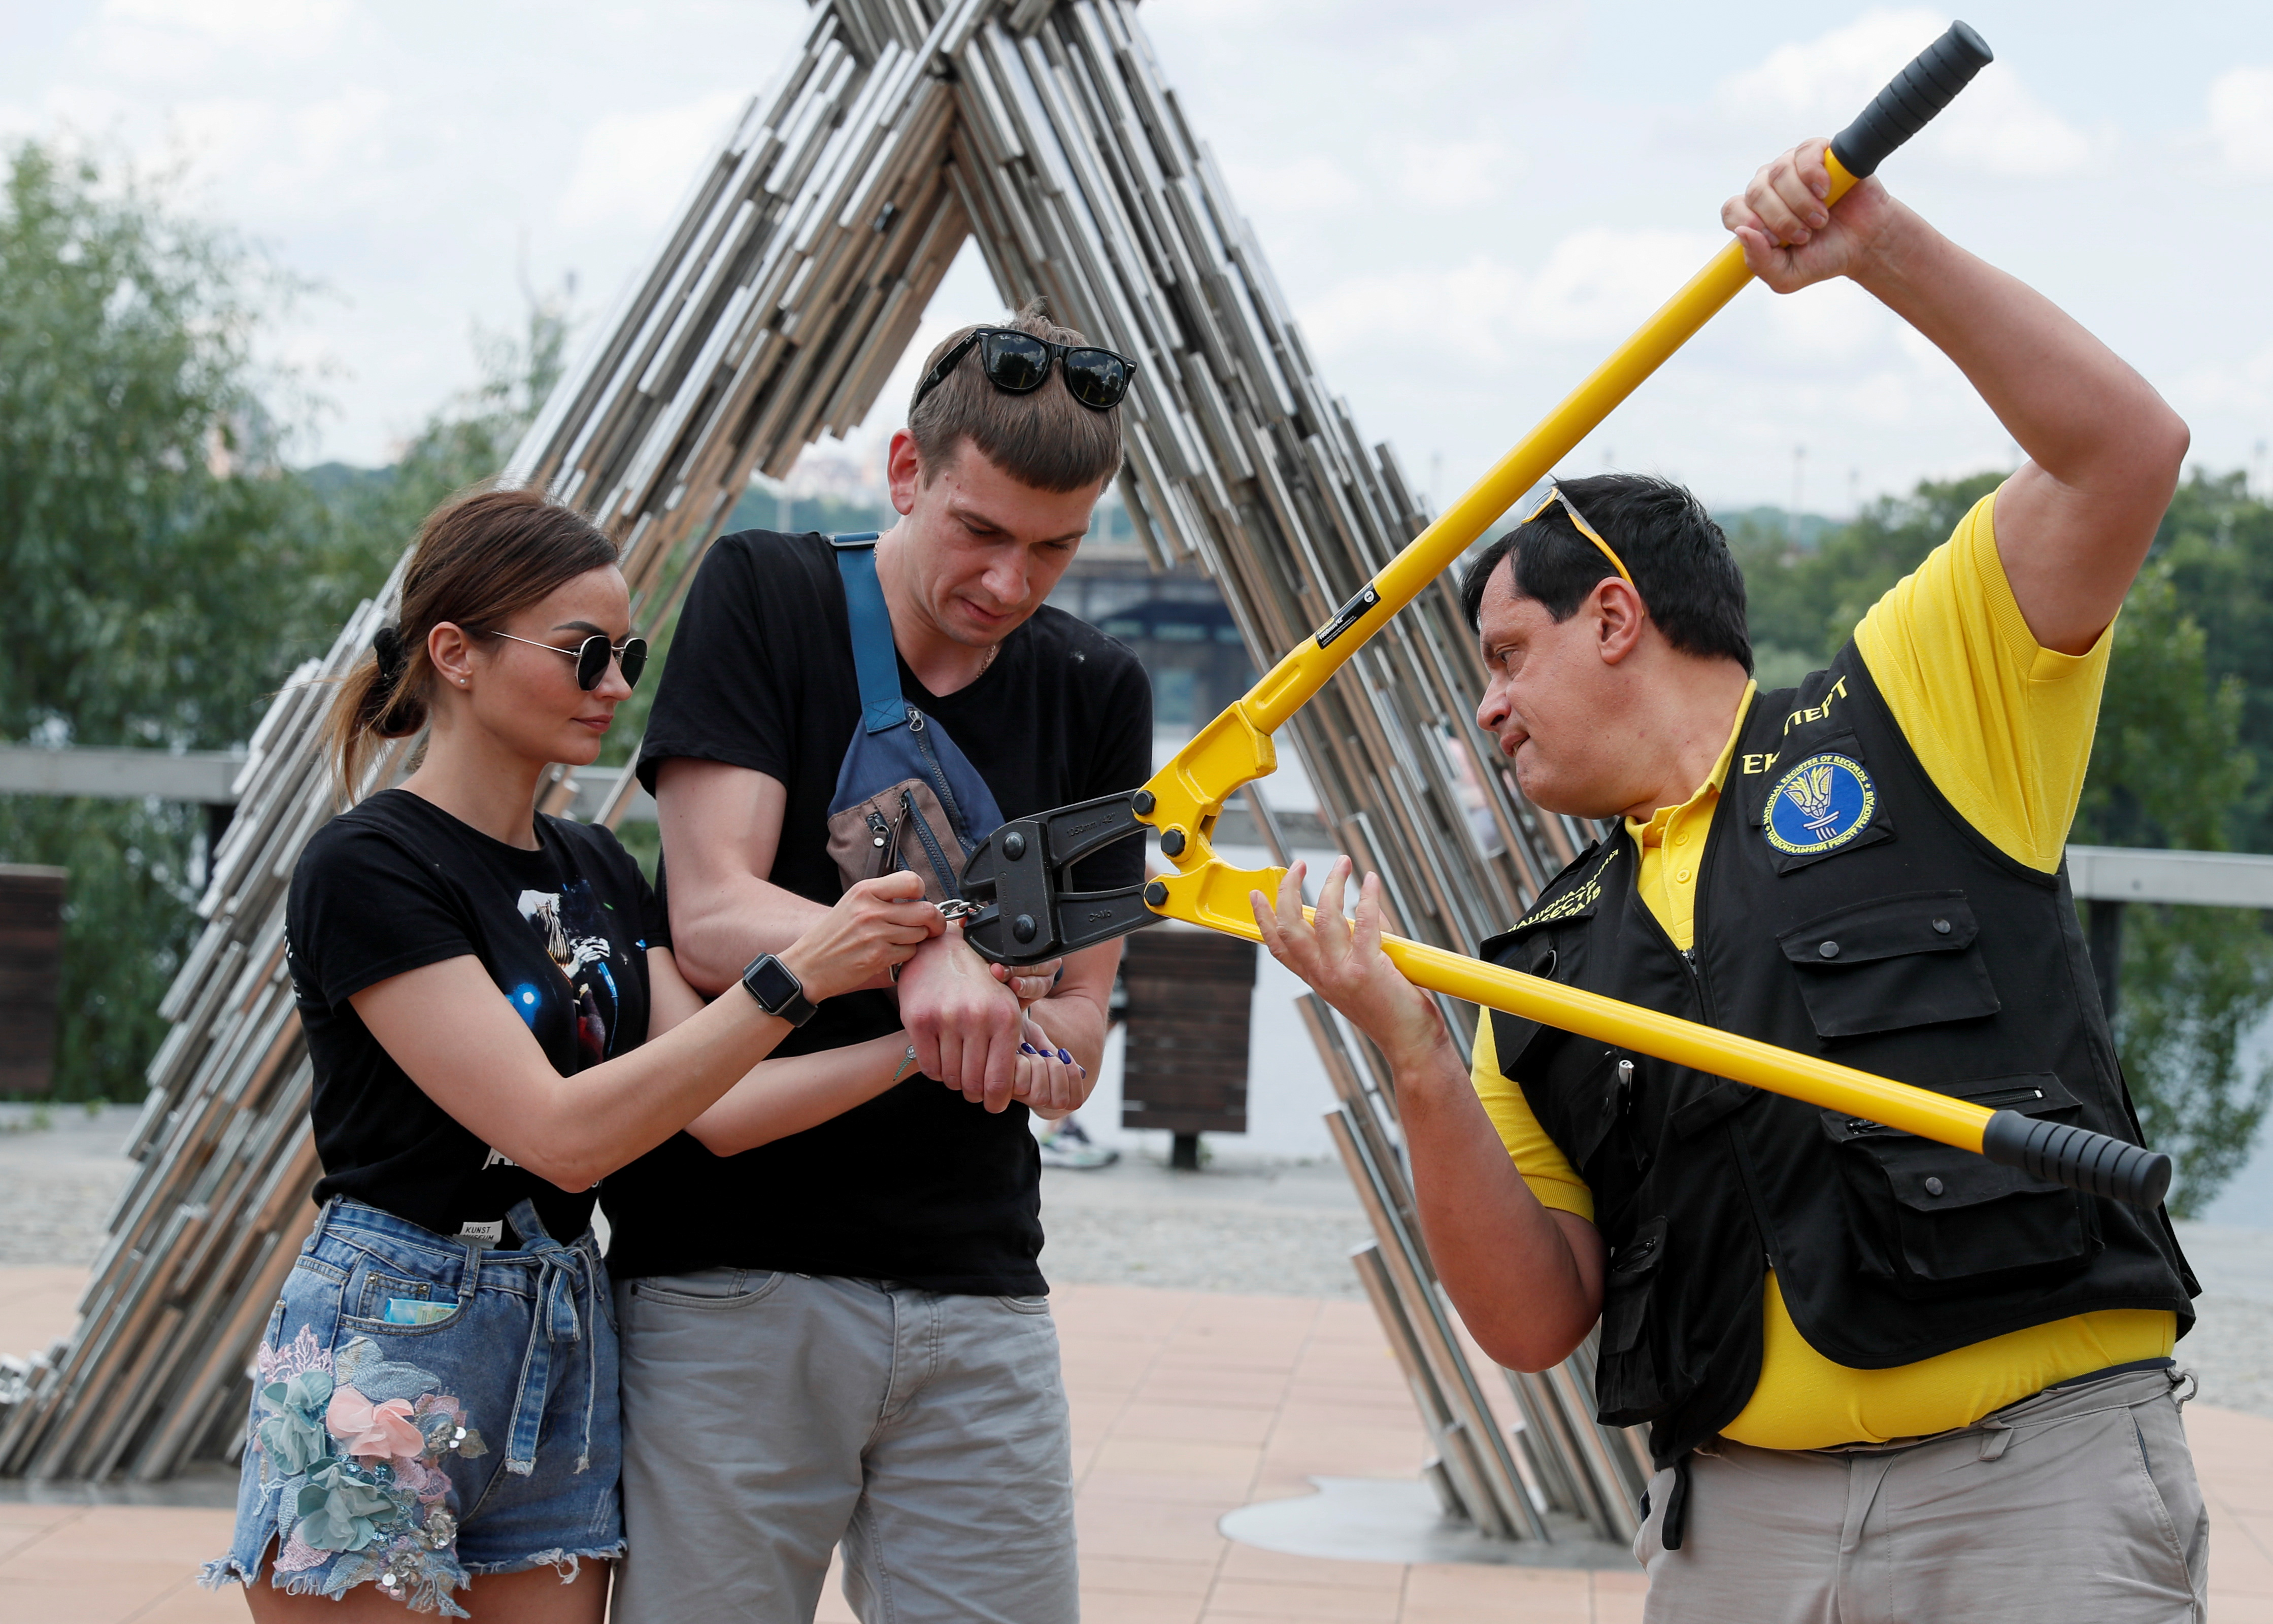 Alexandr Kudlay and Viktoria Pustovitova, who handcuffed themselves and spent 123 days together, have the chain dismantled by a representative from a Ukrainian record book in Kyiv, Ukraine June 17, 2021. The Ukrainian couple split up after 123 days handcuffed together, shedding their bonds on national TV and saying the experiment had brought home uncomfortable truths. Picture taken June 17, 2021. REUTERS/Gleb Garanich